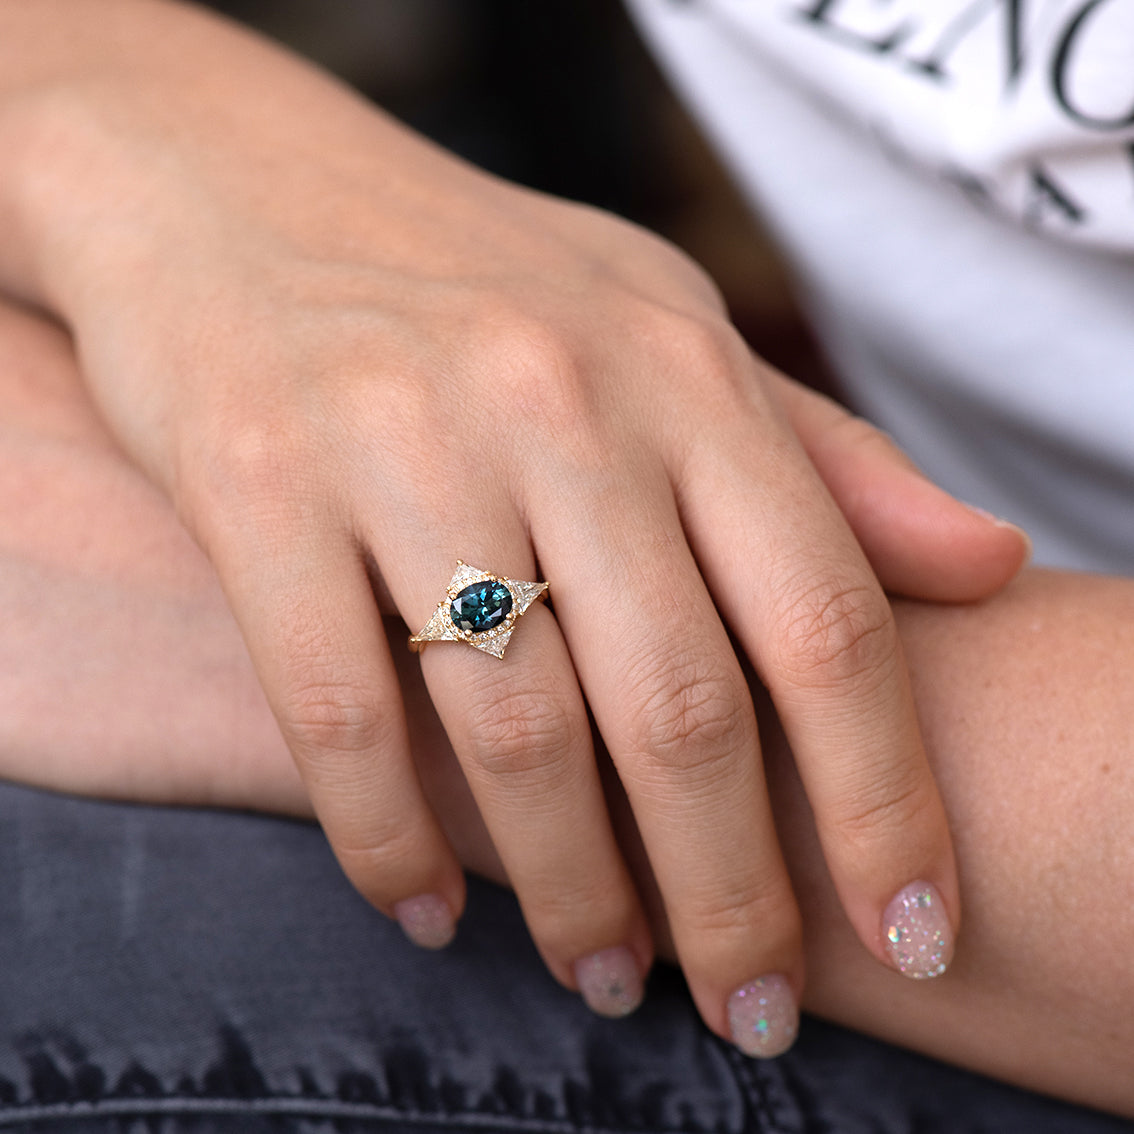 Teal Sapphire Deco Ring with Triangle Diamonds on hand